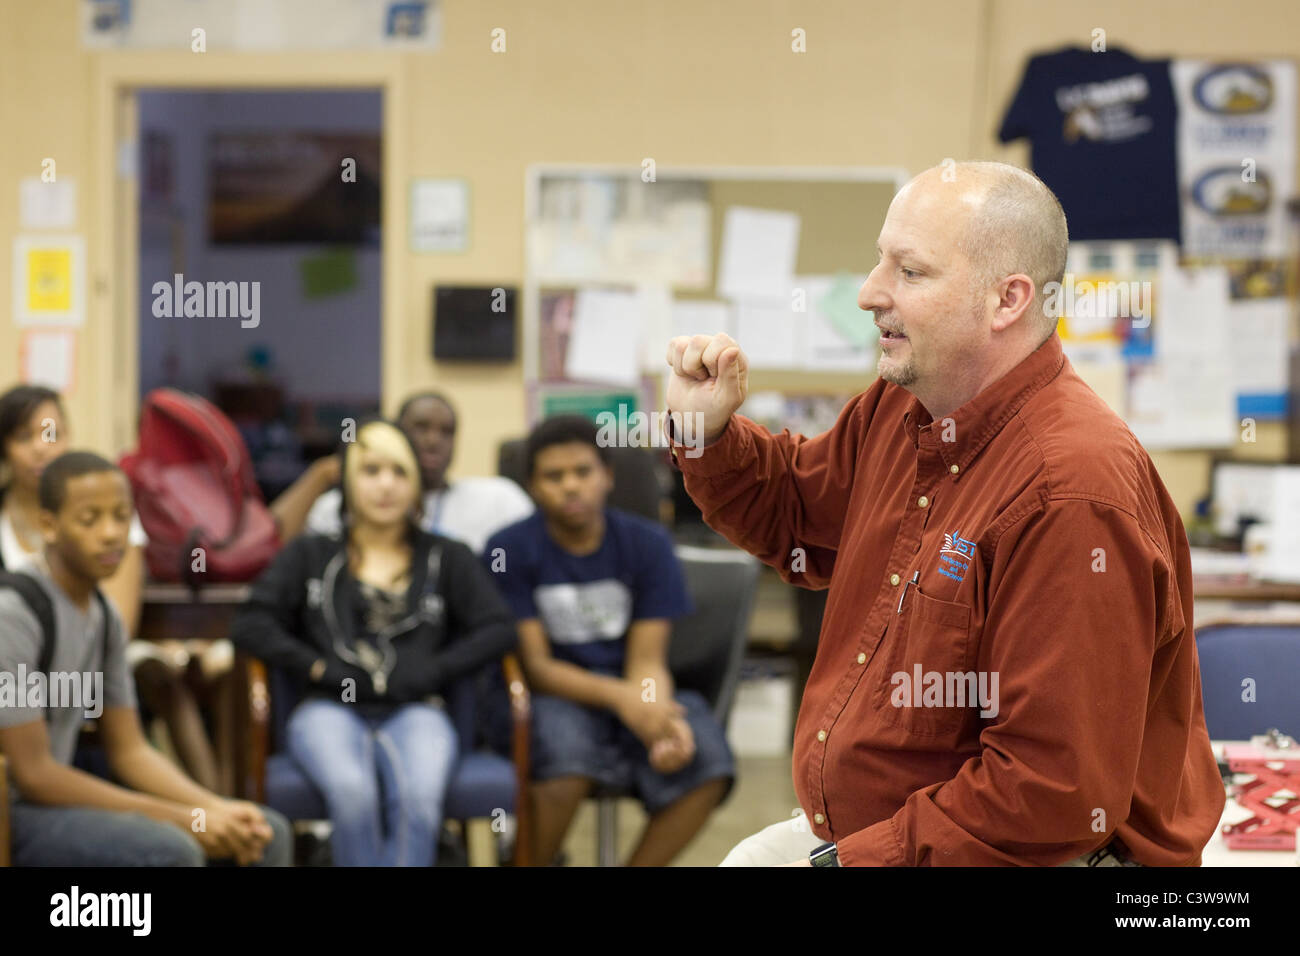 Male Anglo teacher talks to an ethnic and racial mix of students at Rapoport Academy public charter high school - Stock Image